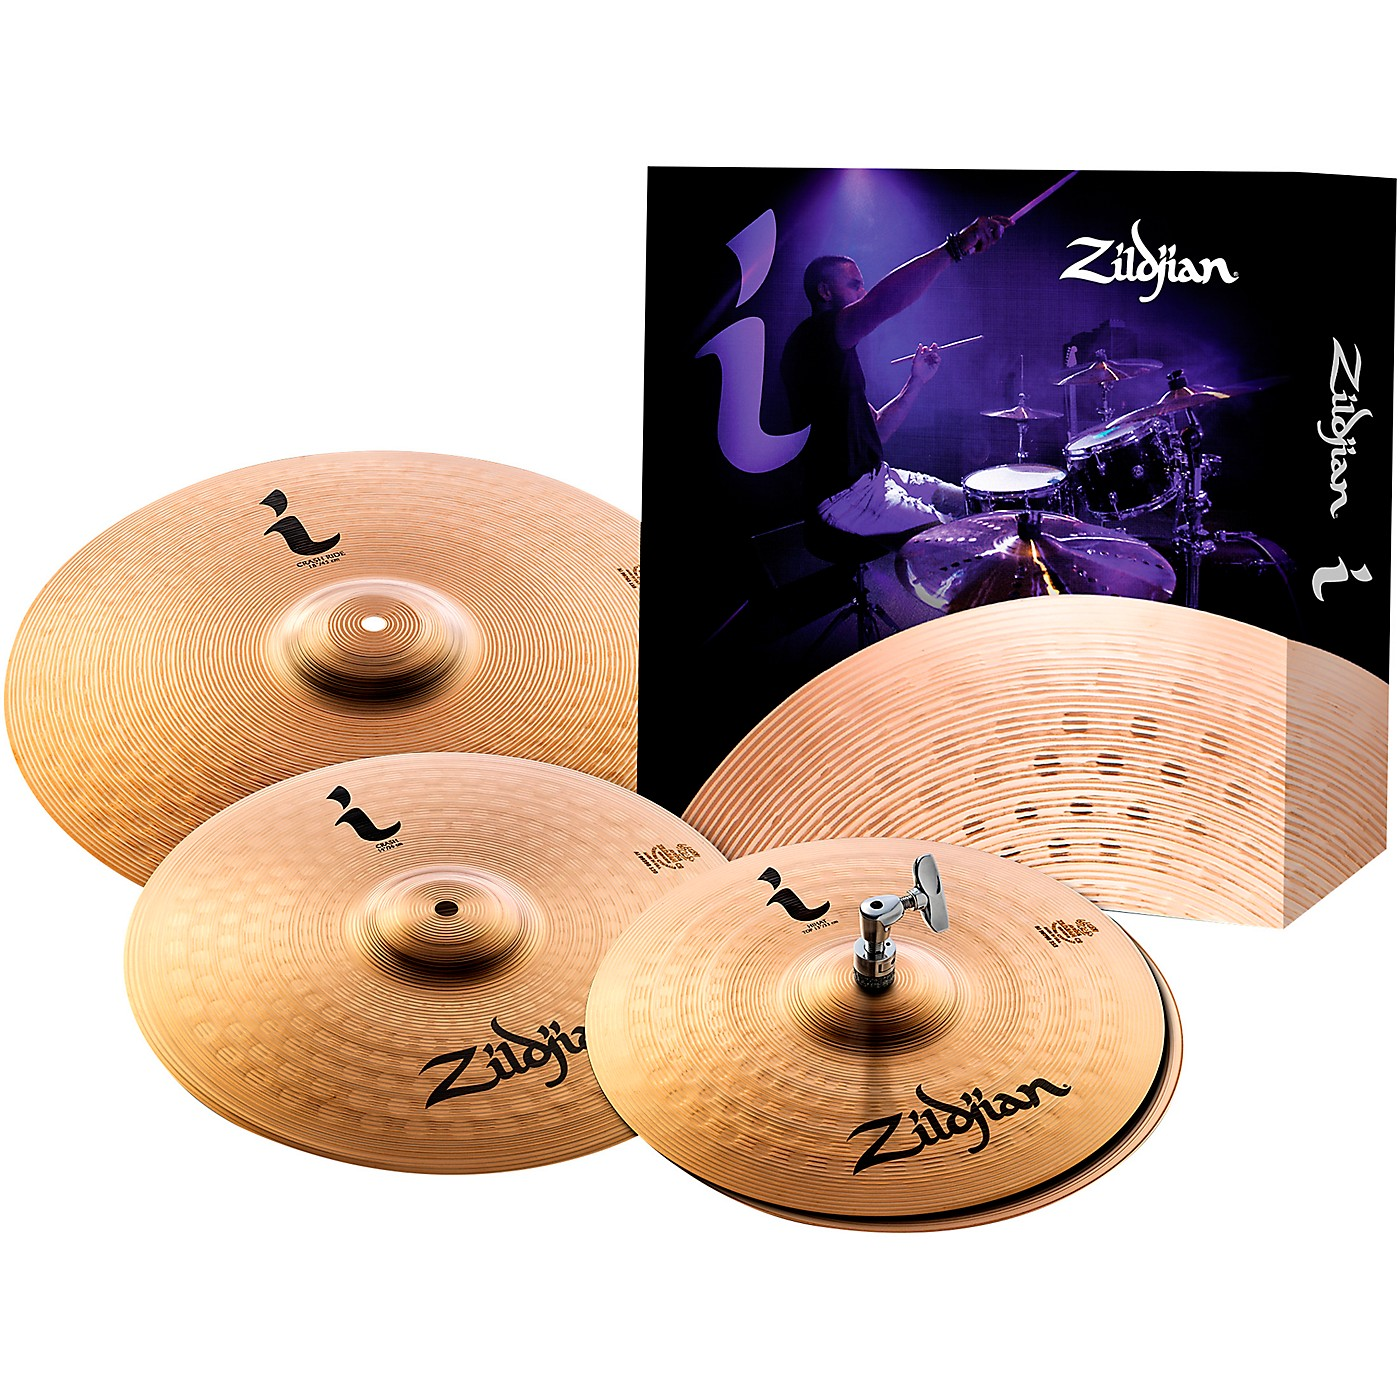 Zildjian I Series Essentials Plus Cymbal Pack thumbnail